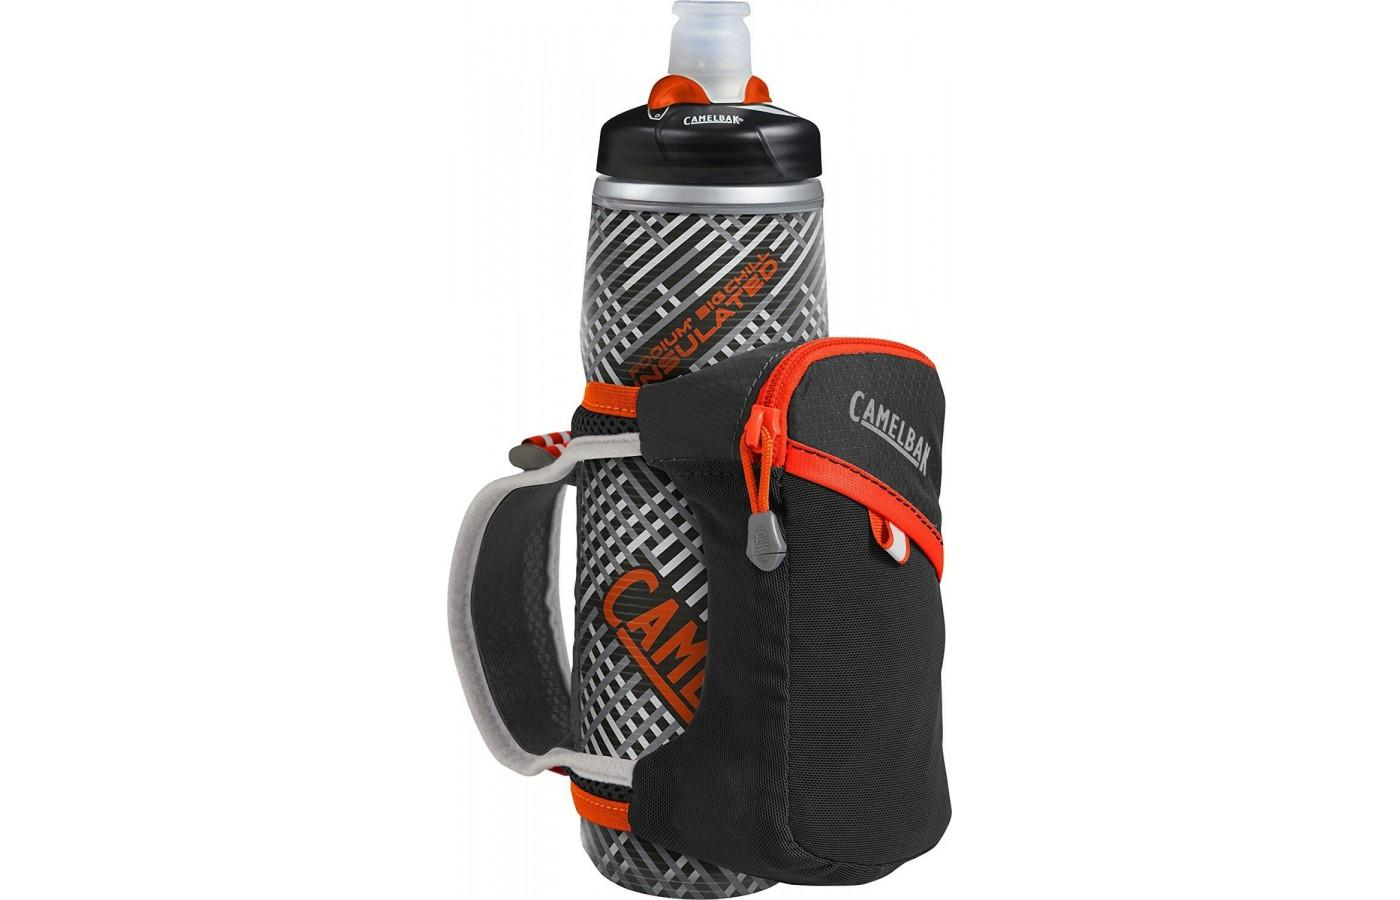 Camelbak Quick Grip Chill Handheld Water Bottle totes 21 oz of water in a round insulated bottle